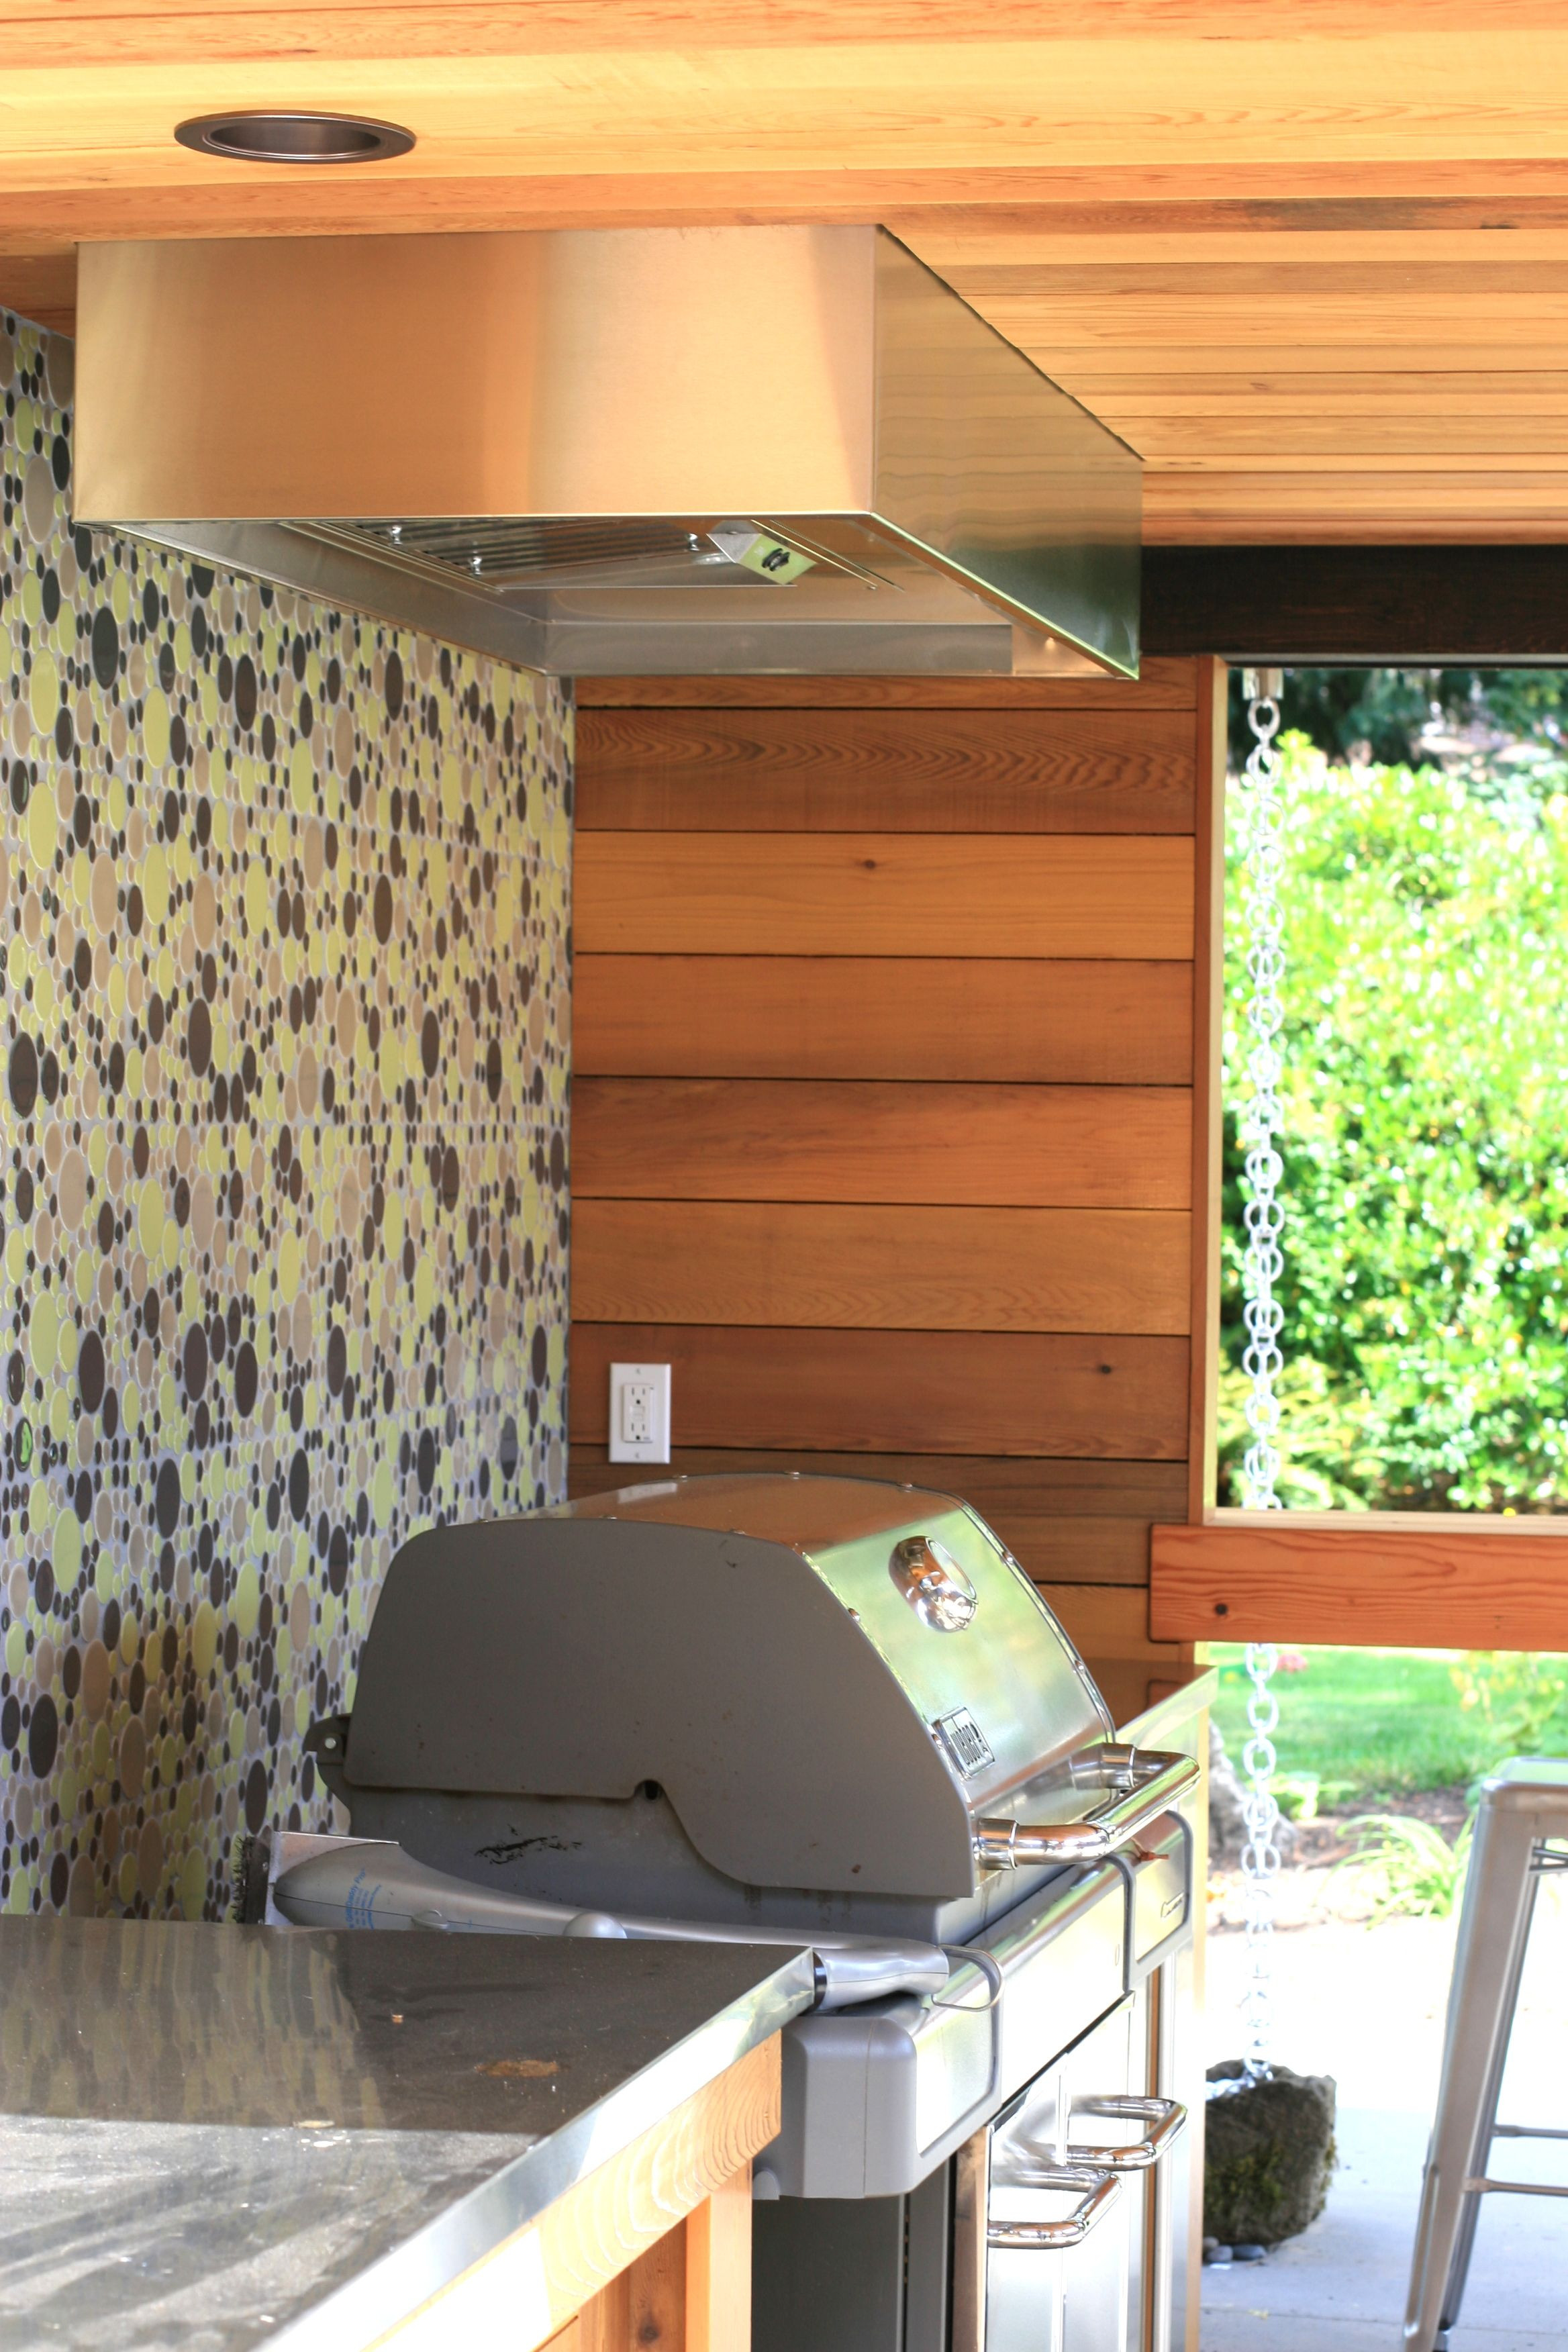 DIY Outdoor Grill Vent Hood  weber genesis grill in a wall unit Google Search